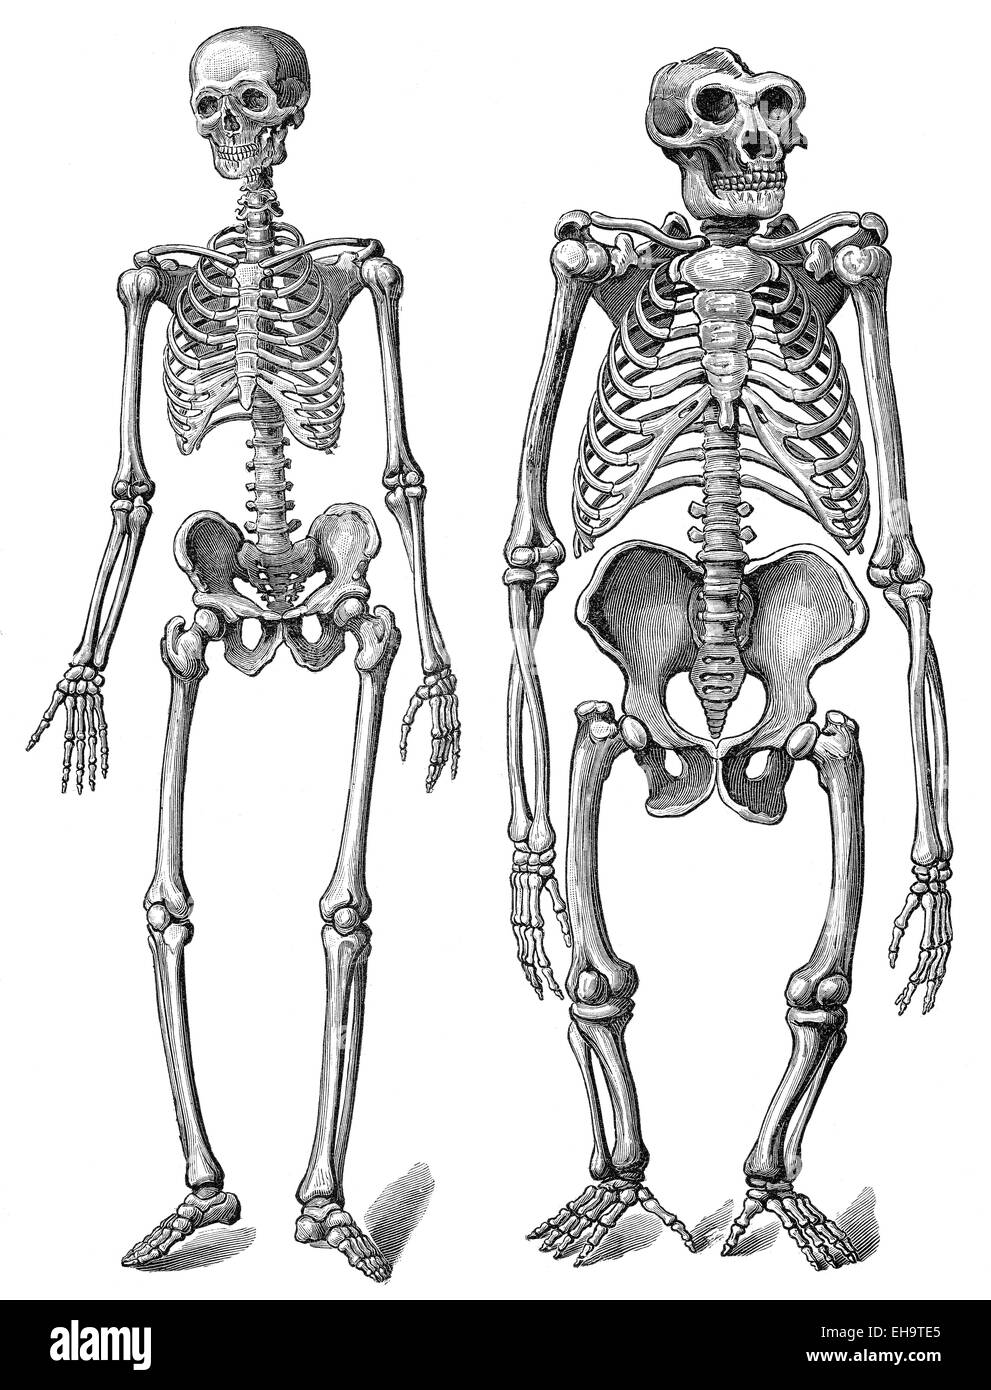 anatomy of a gorilla gallery - learn human anatomy image, Skeleton